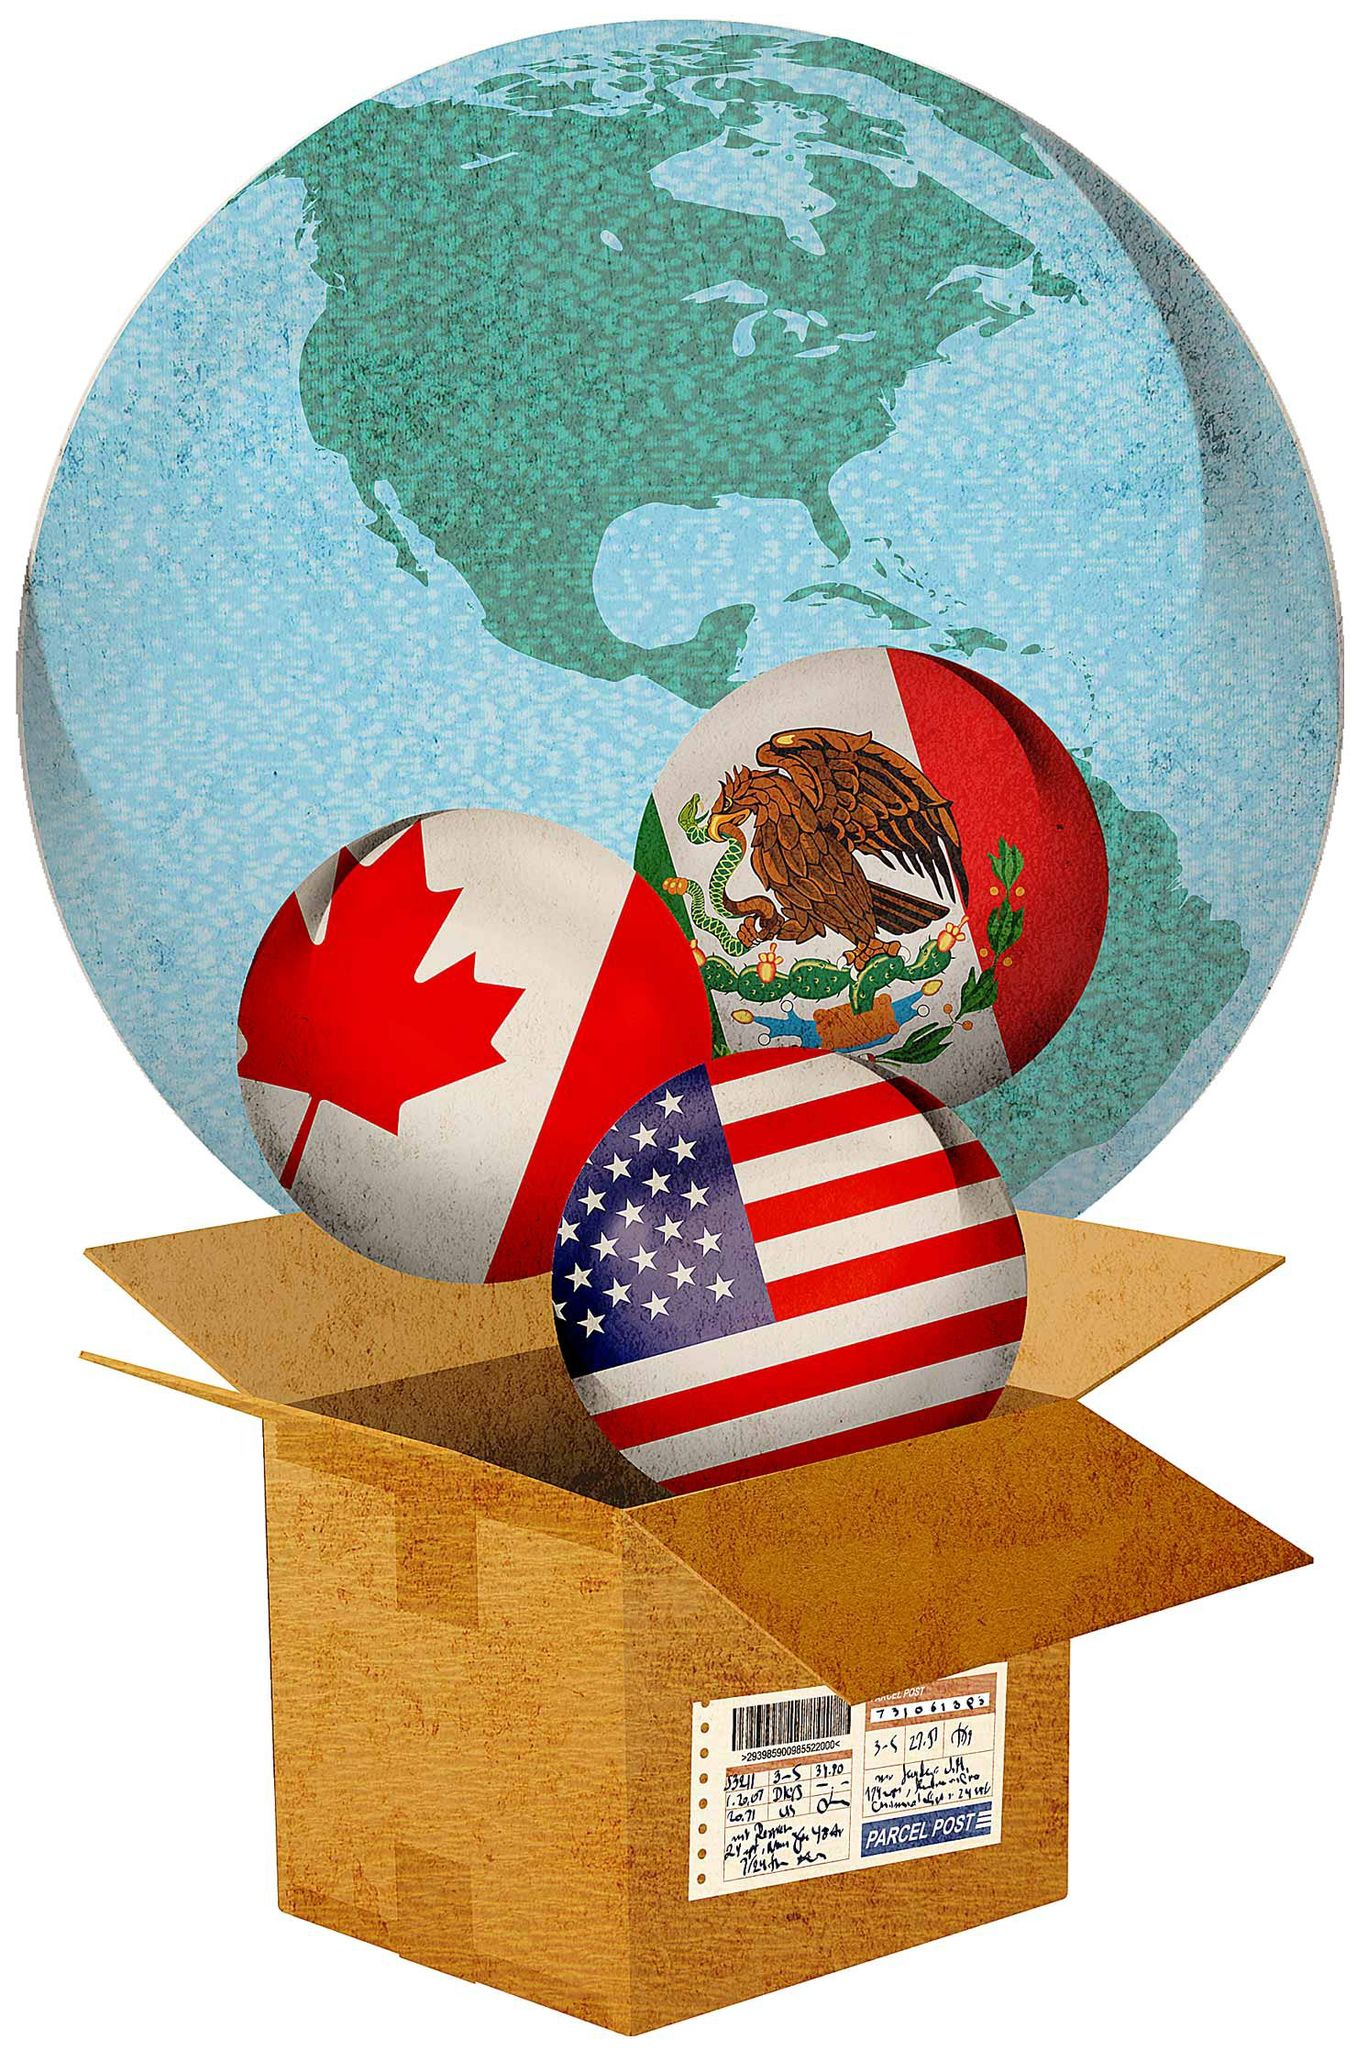 Pro-trade Democrats go missing with Trump's creation of the U.S.-Mexico-Canada Agreement